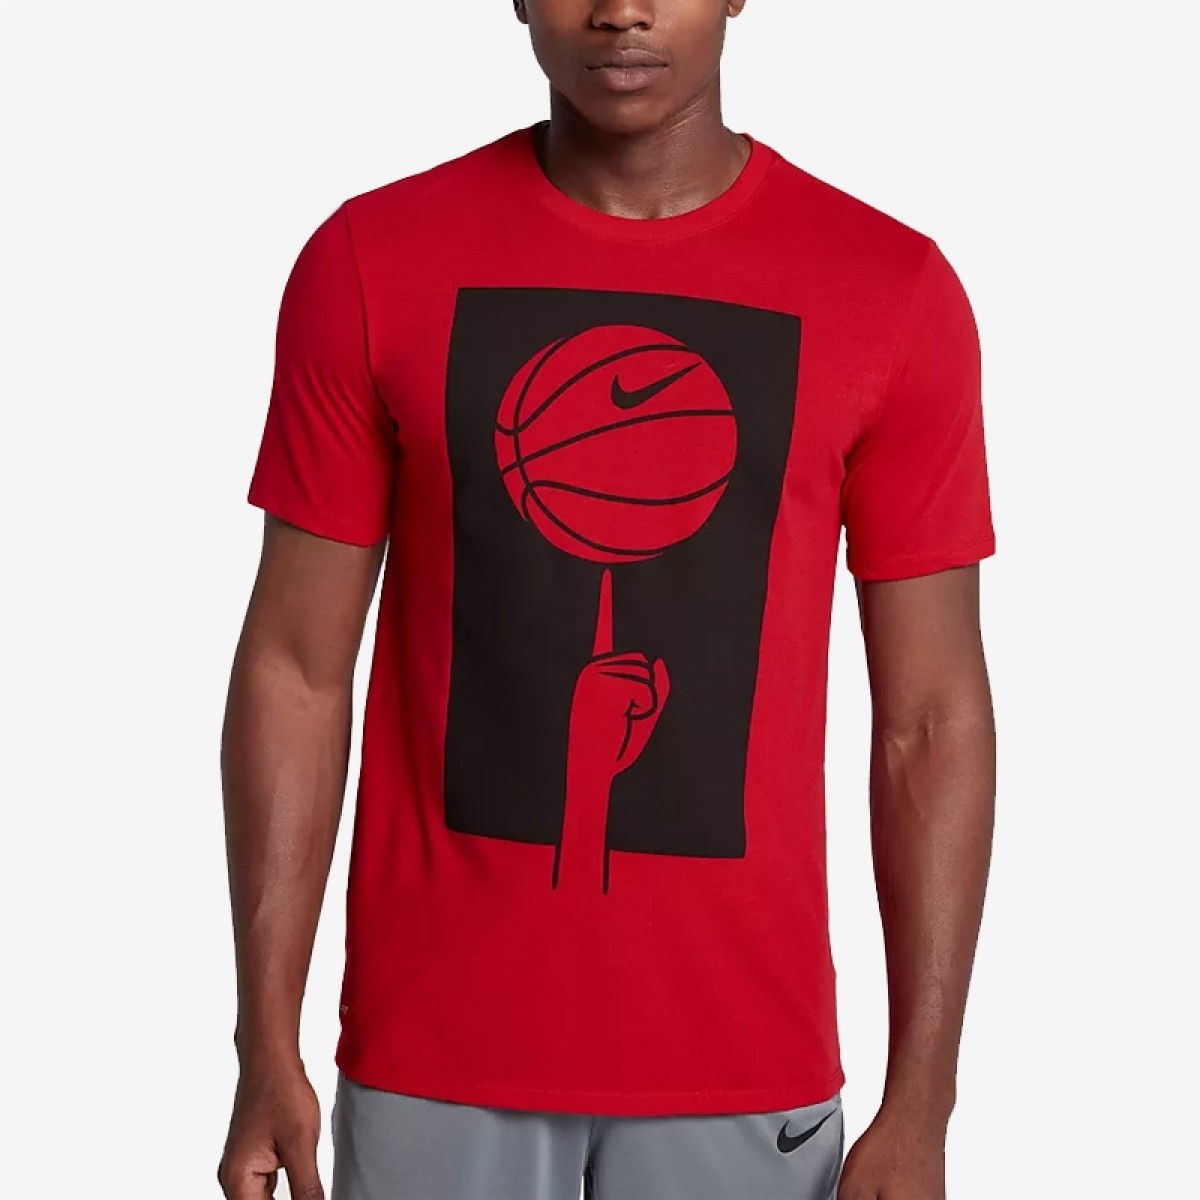 Nike Dry Basketball T-Shirt 'Red'